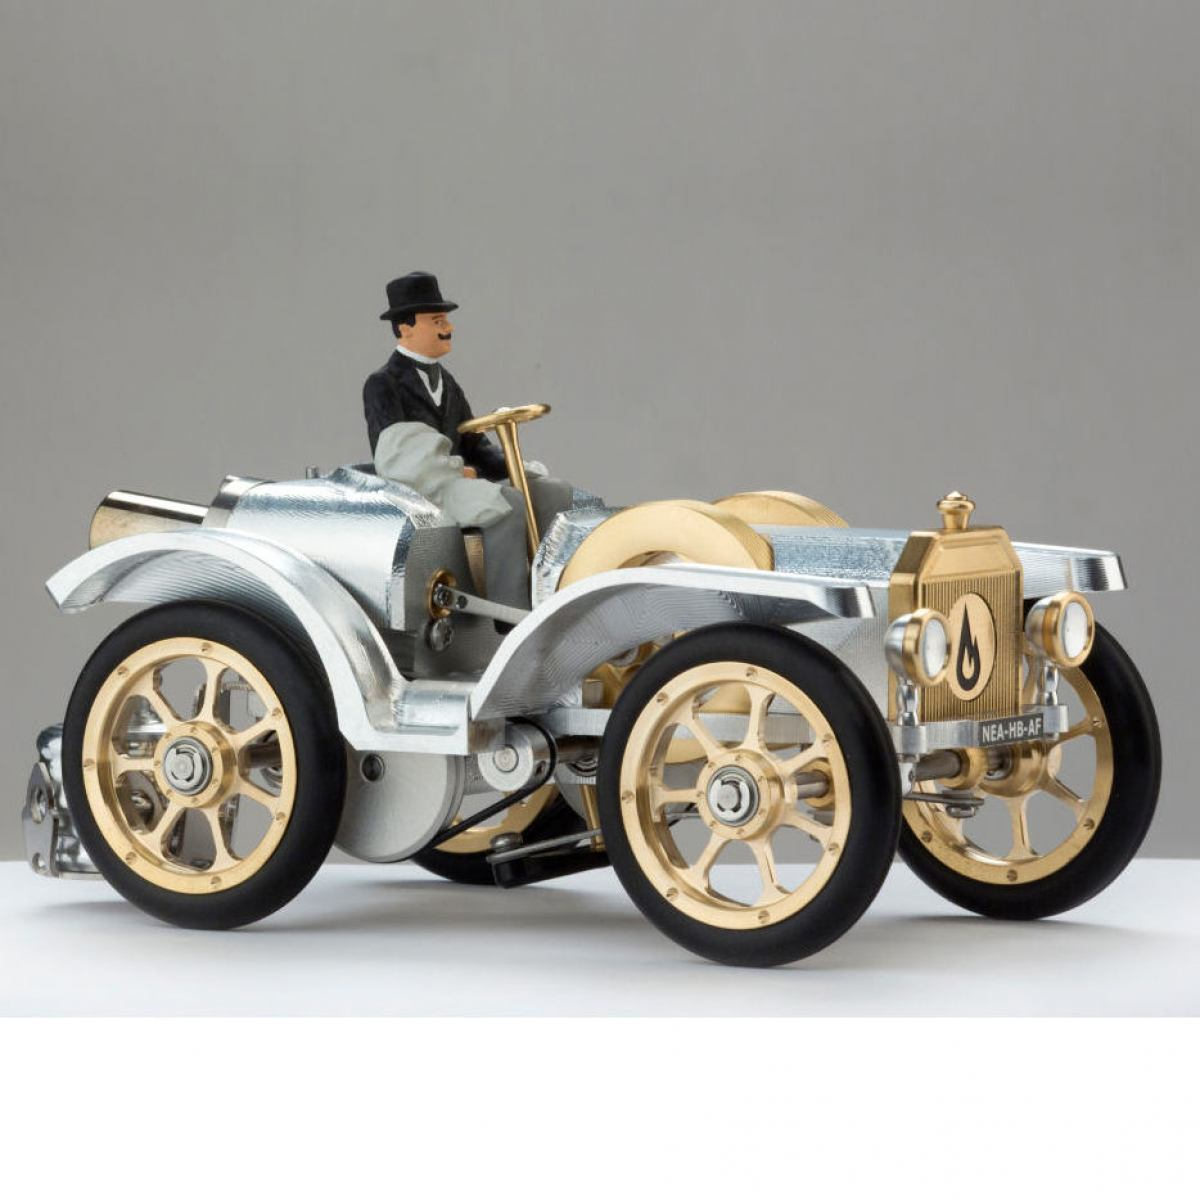 Model car without top and mudguards